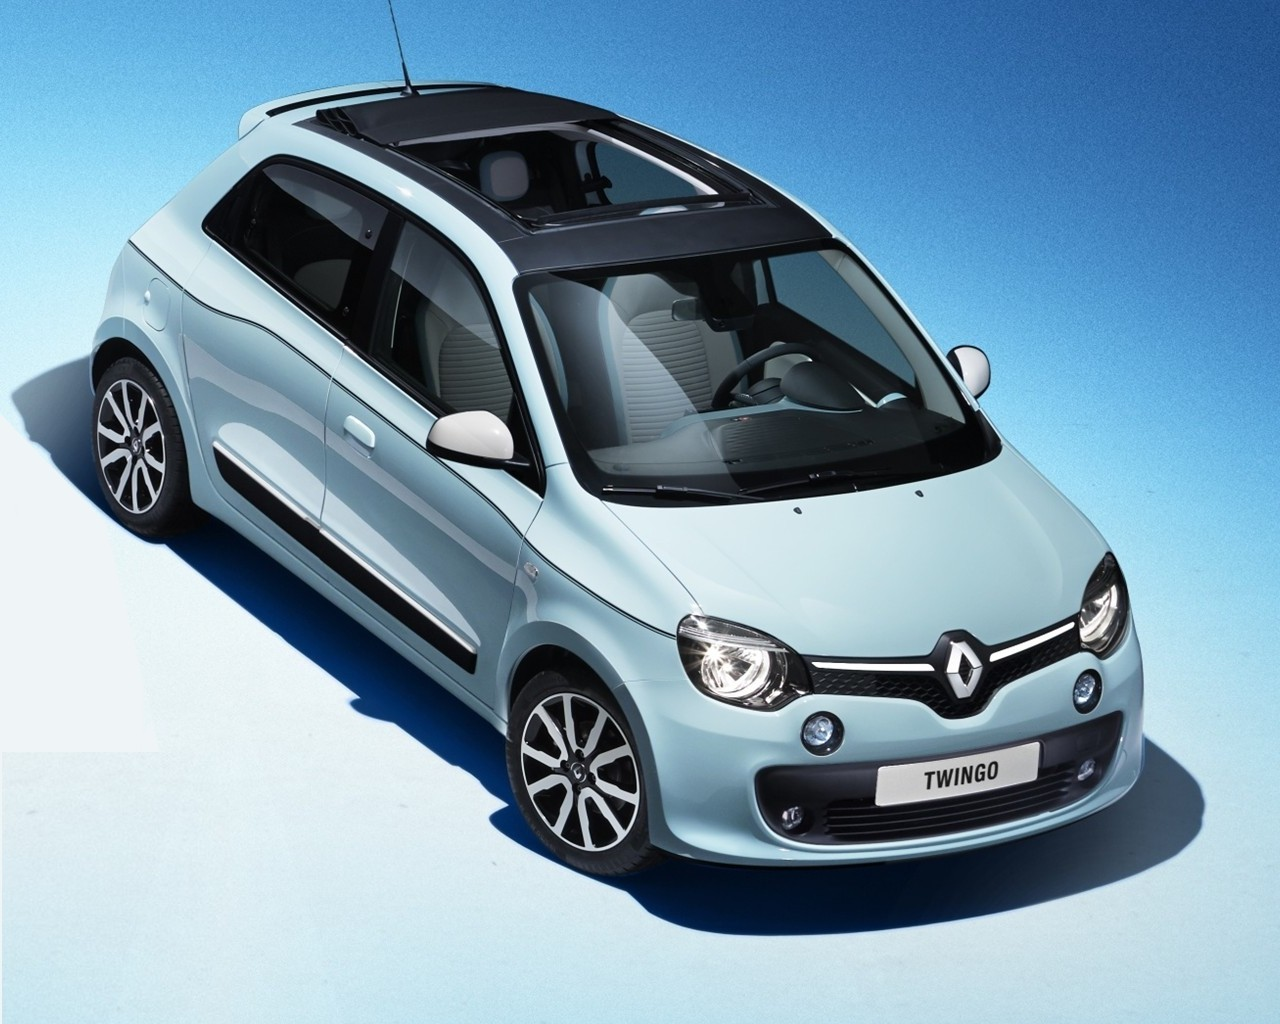 twingo iii la 3 me g n ration de la citadine sorti p342 plan te renault. Black Bedroom Furniture Sets. Home Design Ideas